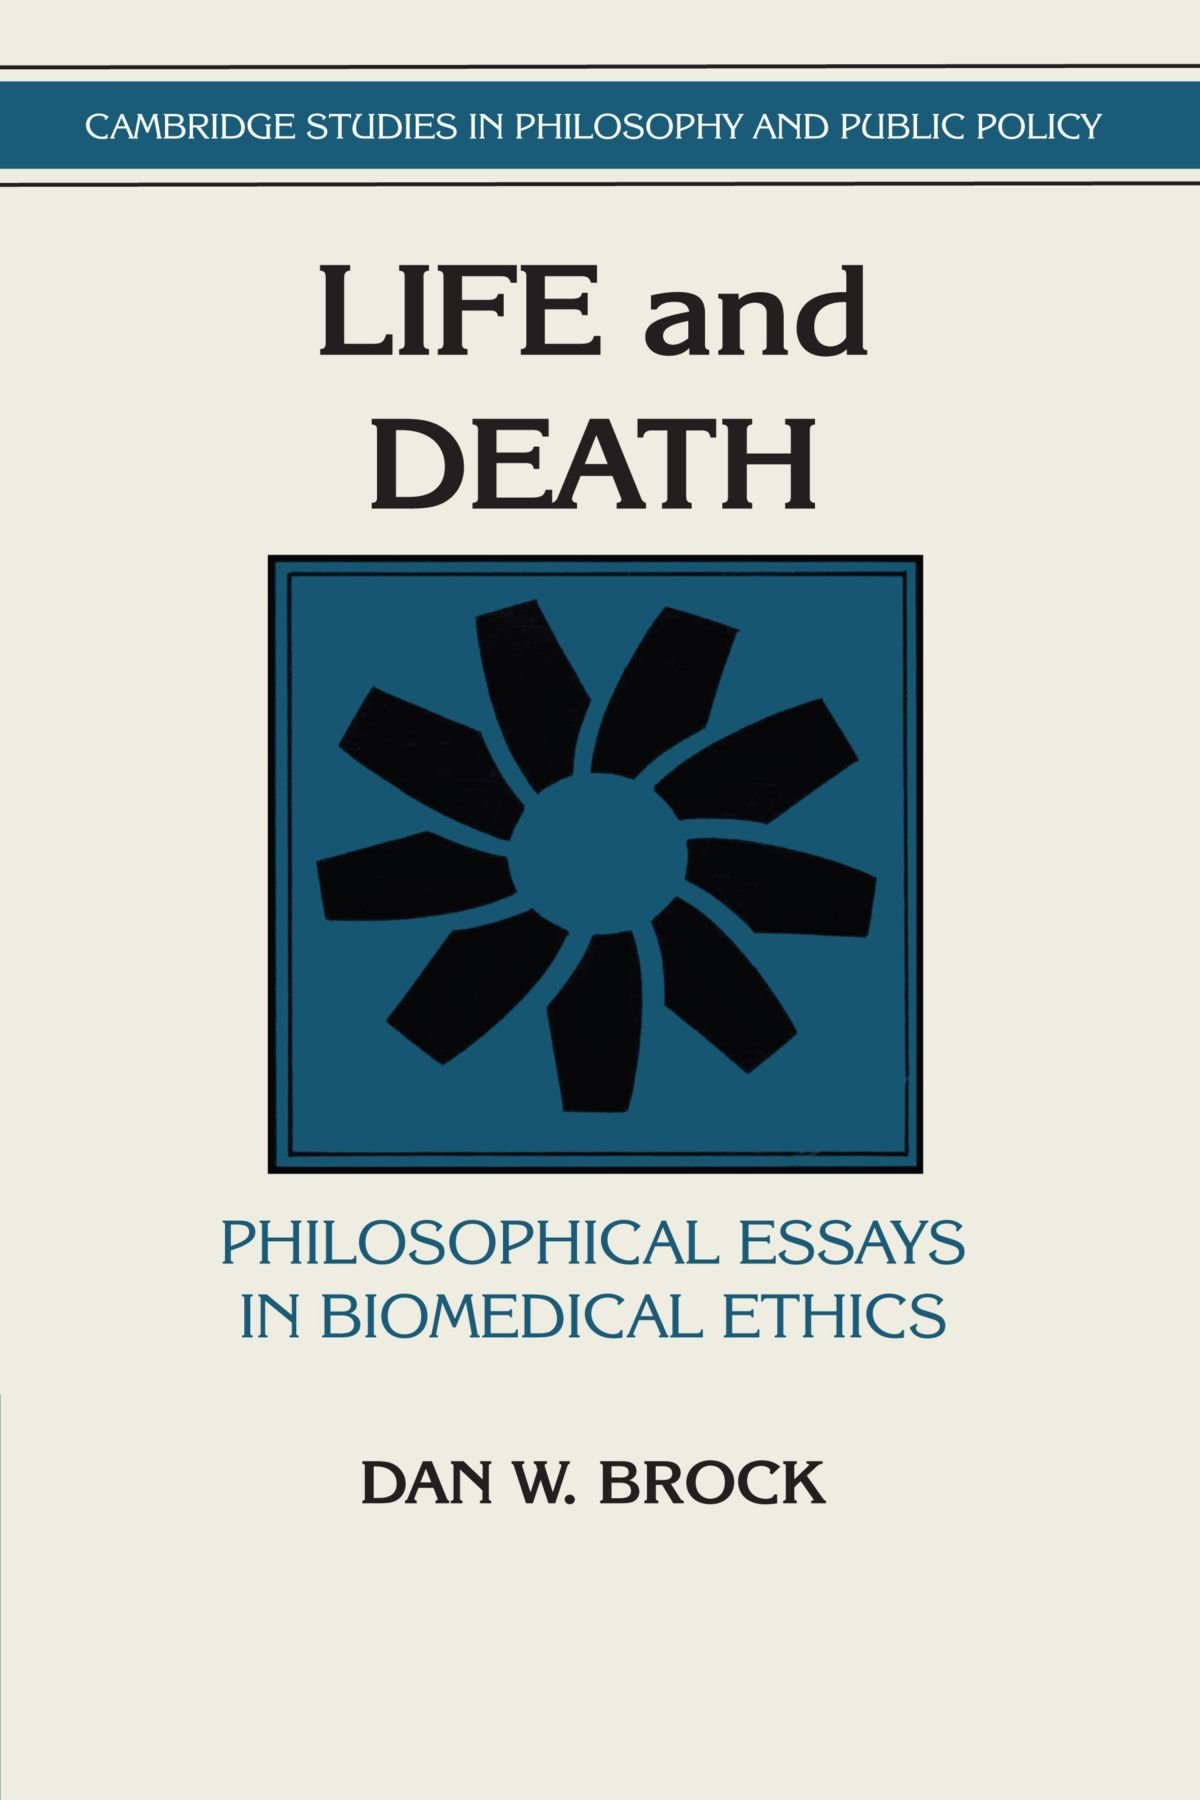 Essays On Ethics Life And Death Philosophical Essays In Biomedical  Life And Death Philosophical Essays In Biomedical Ethics Life And Death  Philosophical Essays In Biomedical Ethics